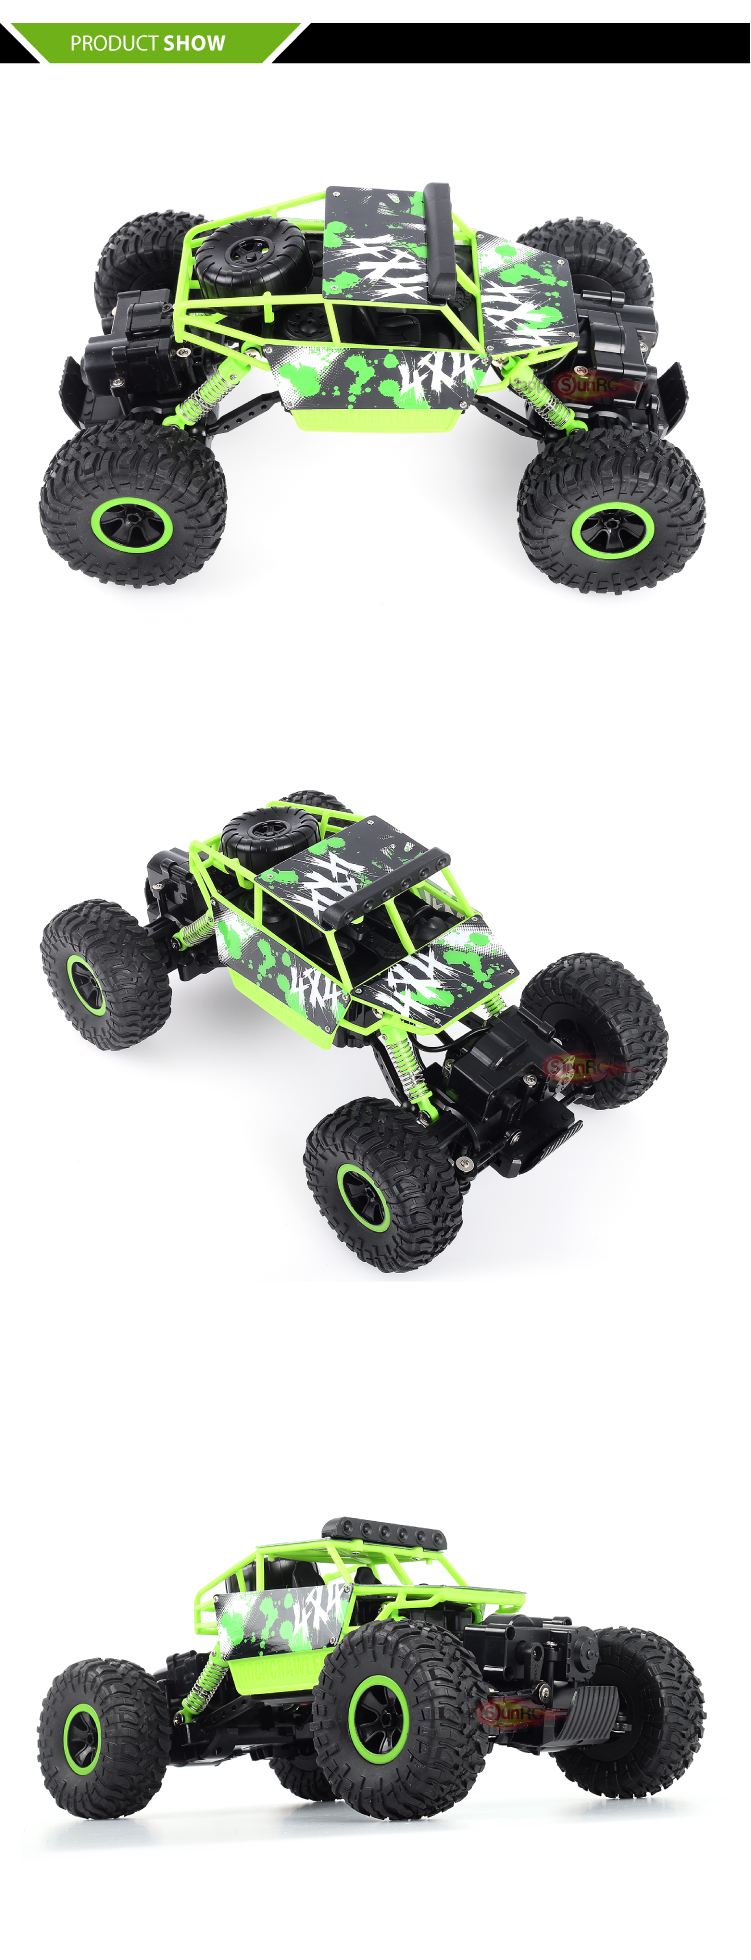 2.4g 4WD rock crawler toy RTR fast rc car with 1:18 scale